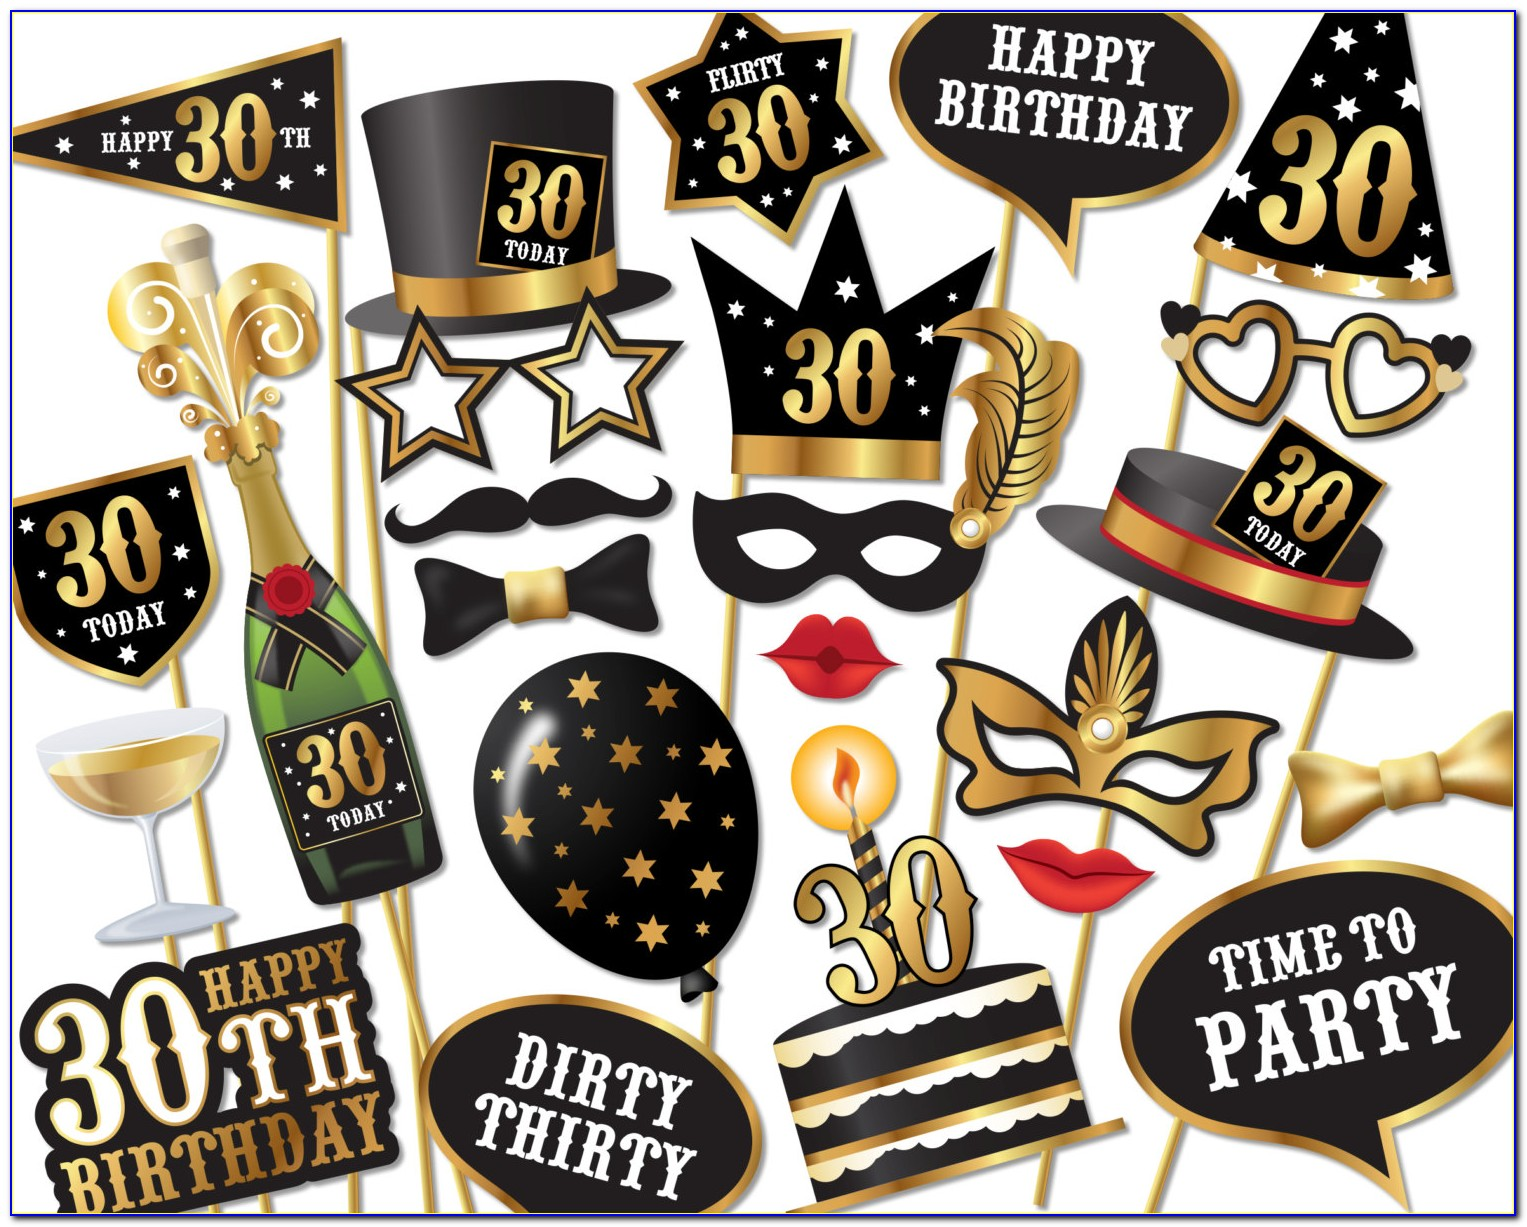 Birthday Photo Booth Props Templates Free